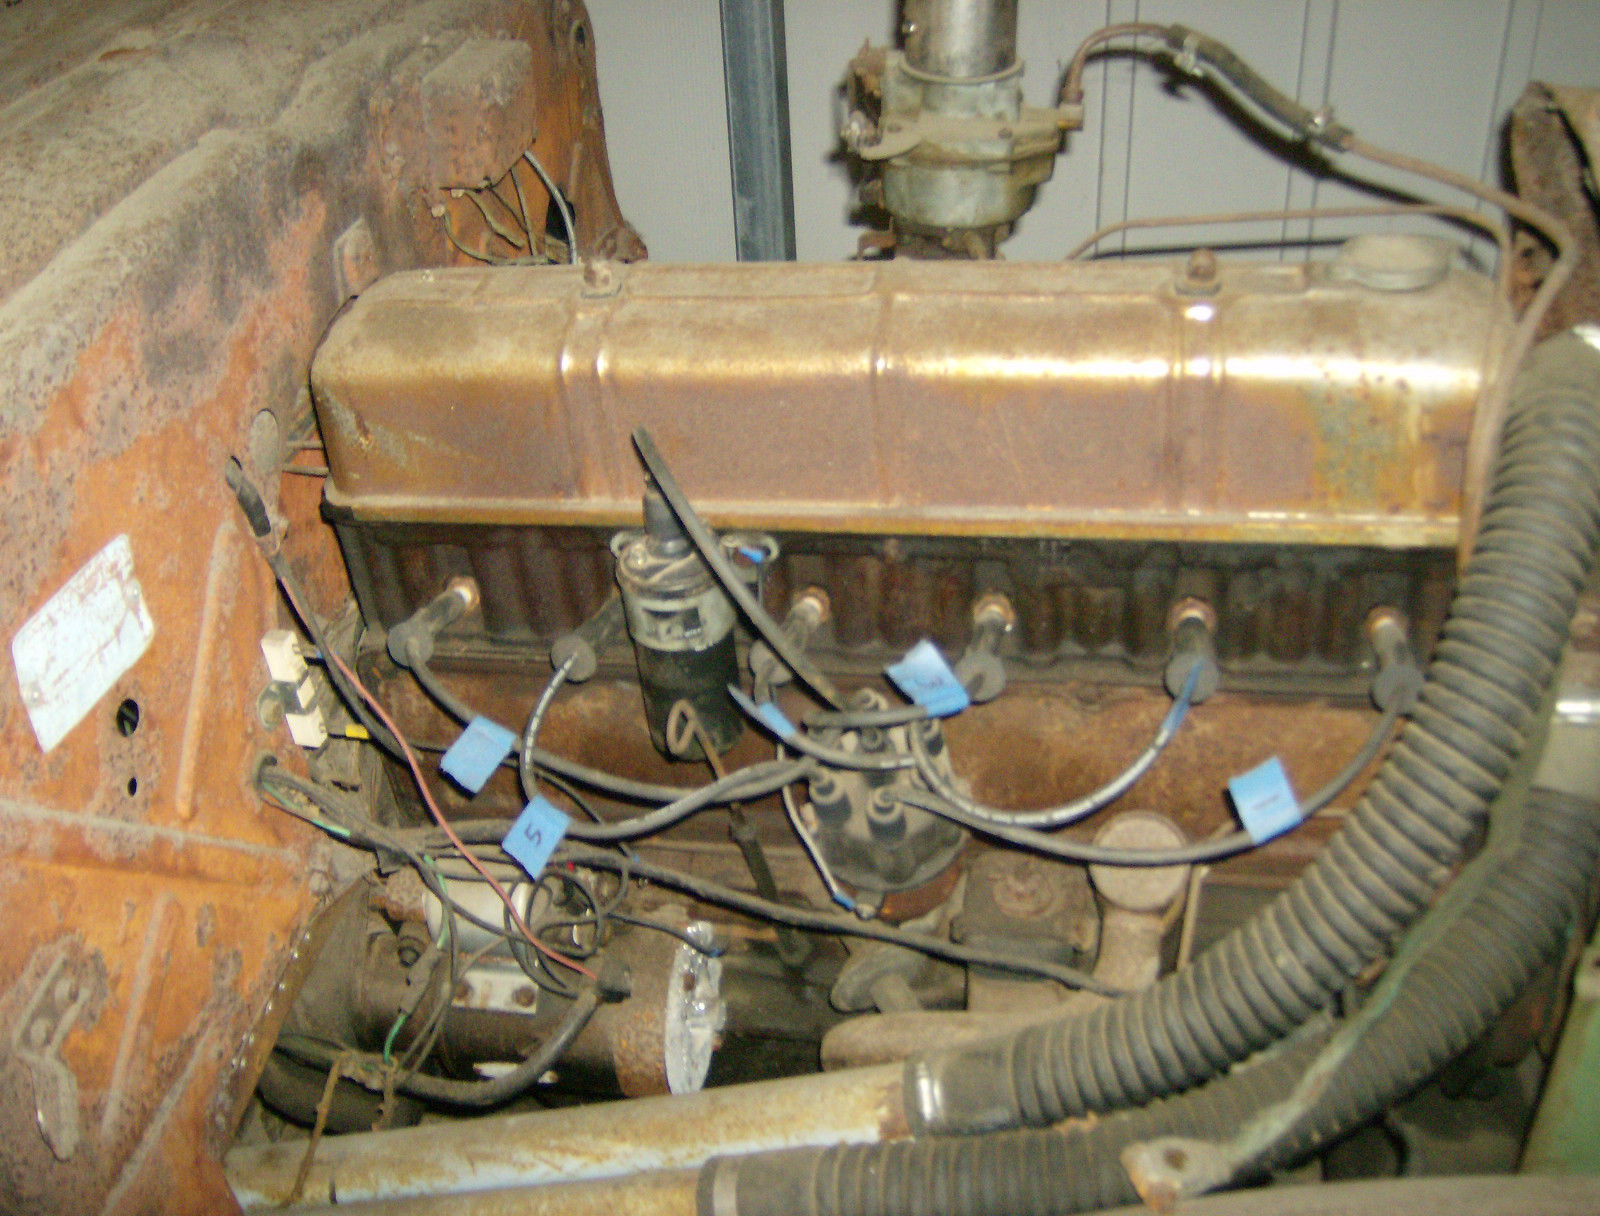 1941 1953 Chevrolet Rat Rod Hot Barn Find Pickup Project 40s 235 Chevy Wiring Prevnext